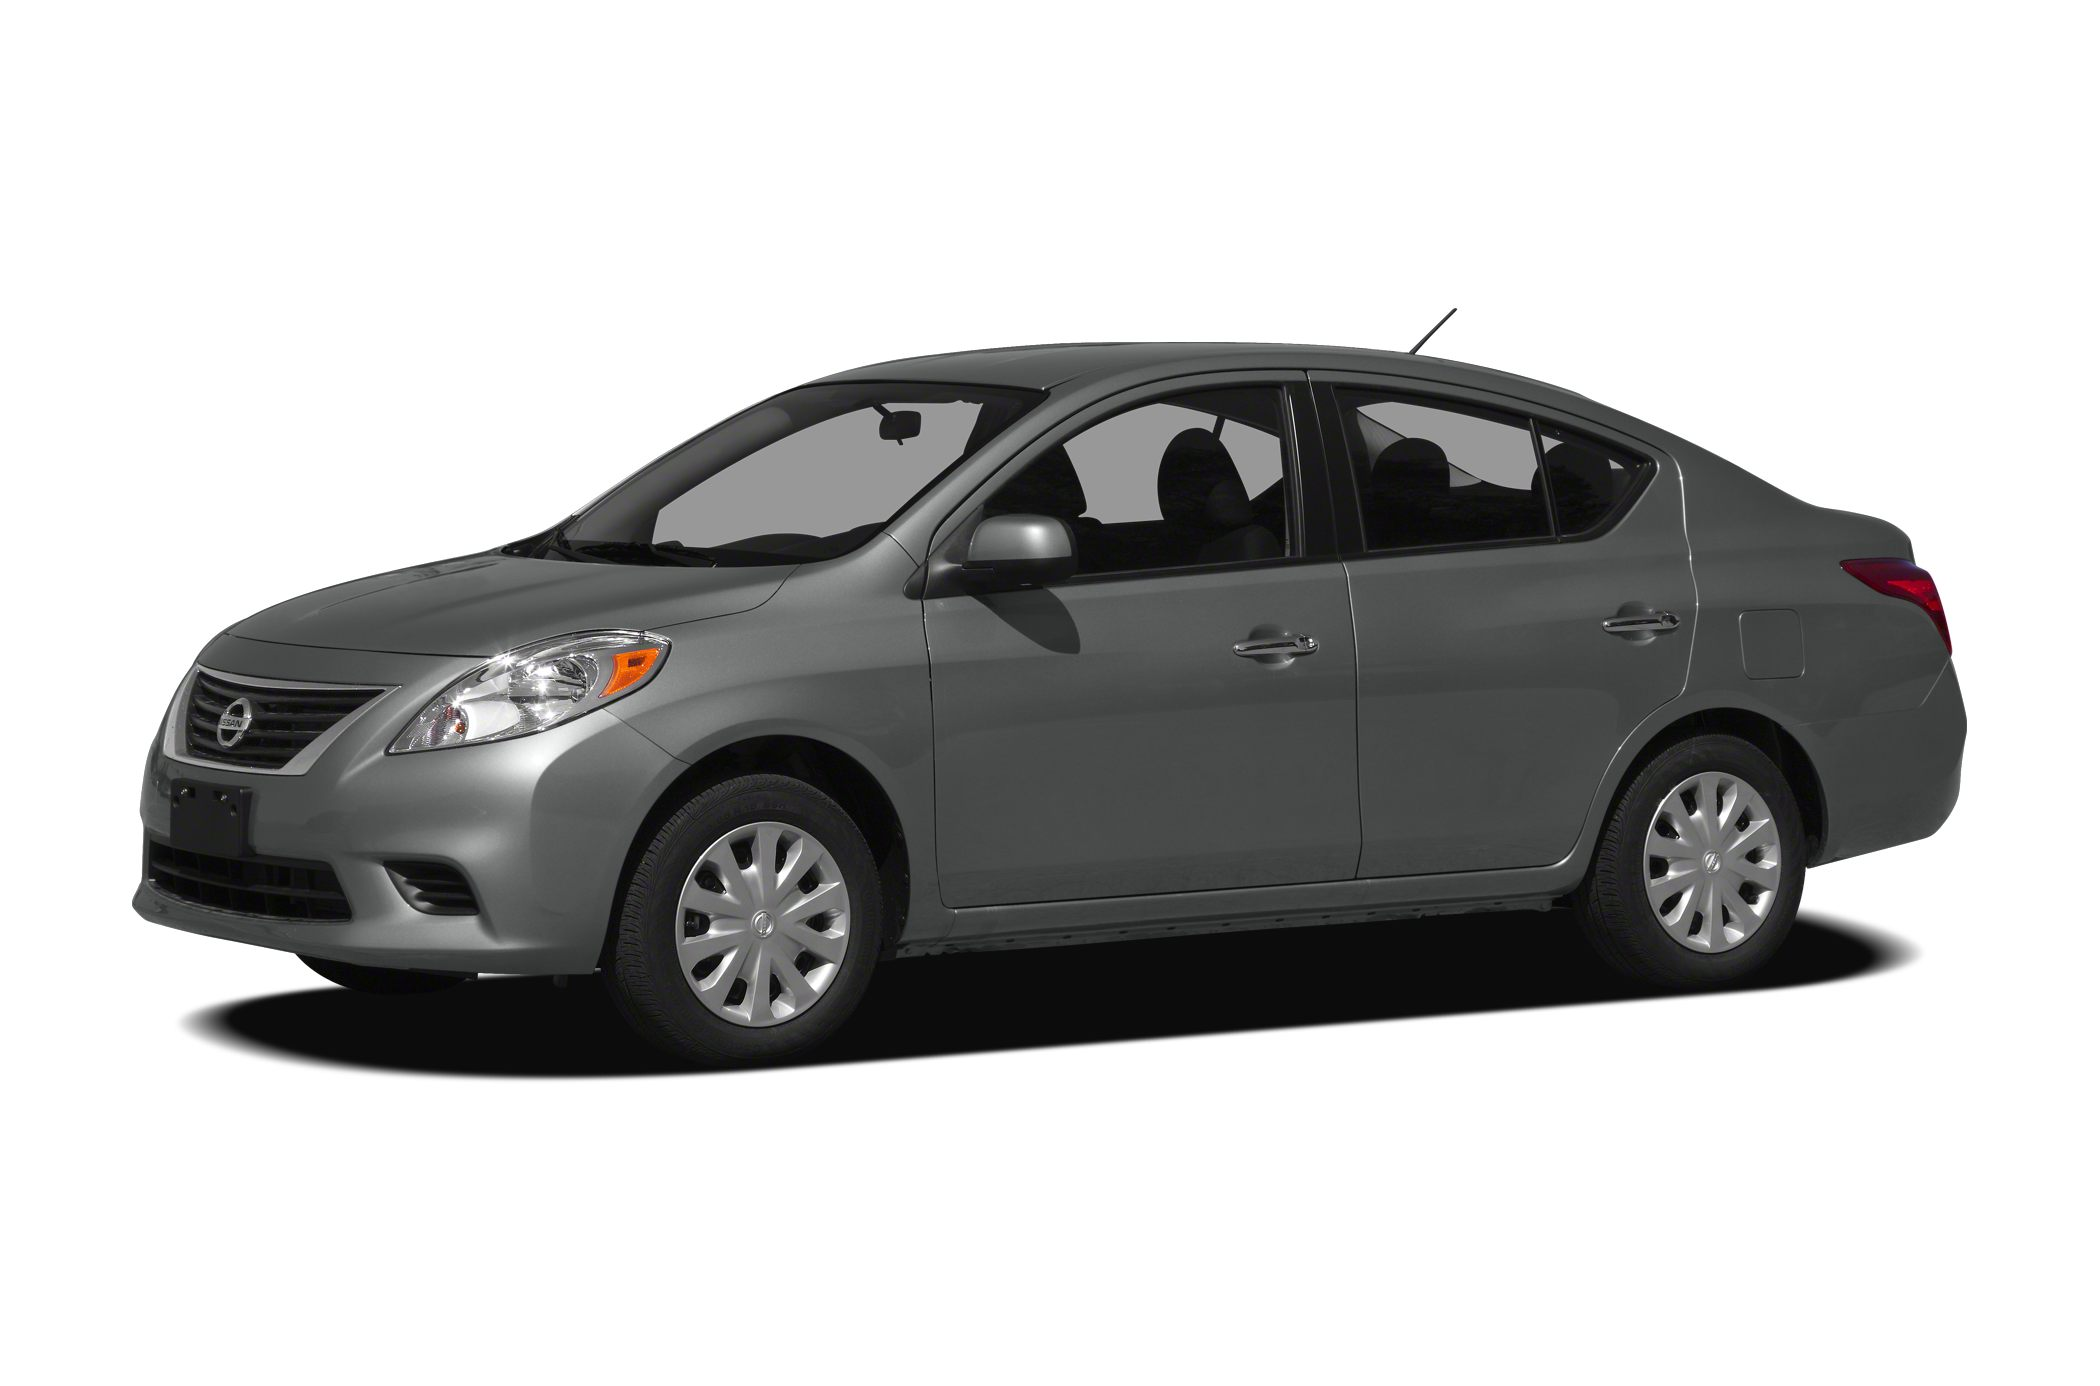 2012 Nissan Versa 16 SV SV trim PRICE DROP FROM 9995 300 below Kelley Blue Book EPA 38 MPG